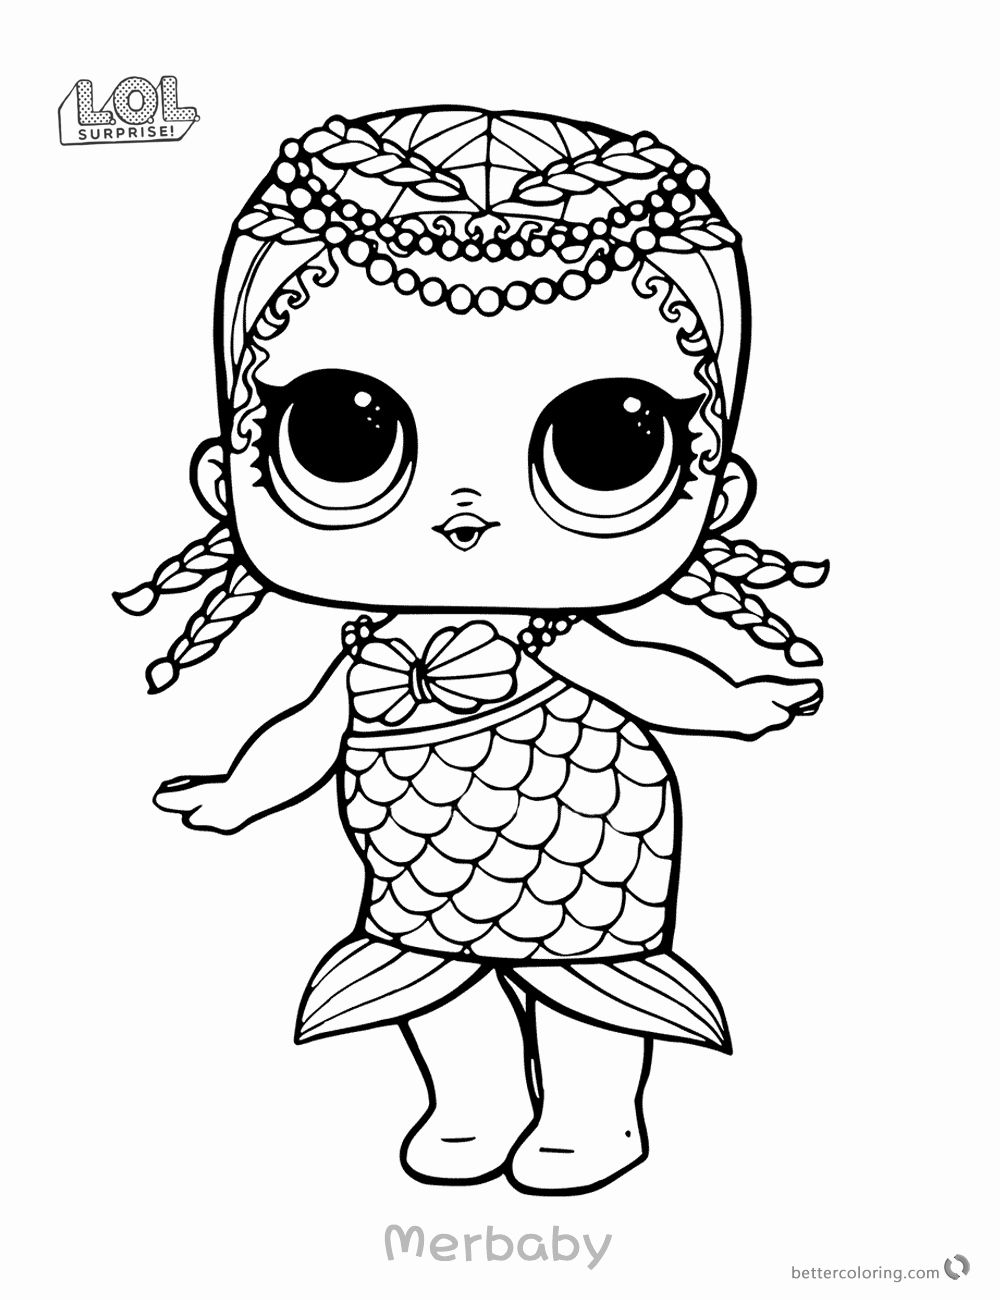 Lol Surprise Doll Coloring Pages Printable Elegant Mermaid Lol Surprise Doll Coloring Page Mermaid Coloring Pages Unicorn Coloring Pages Cartoon Coloring Pages